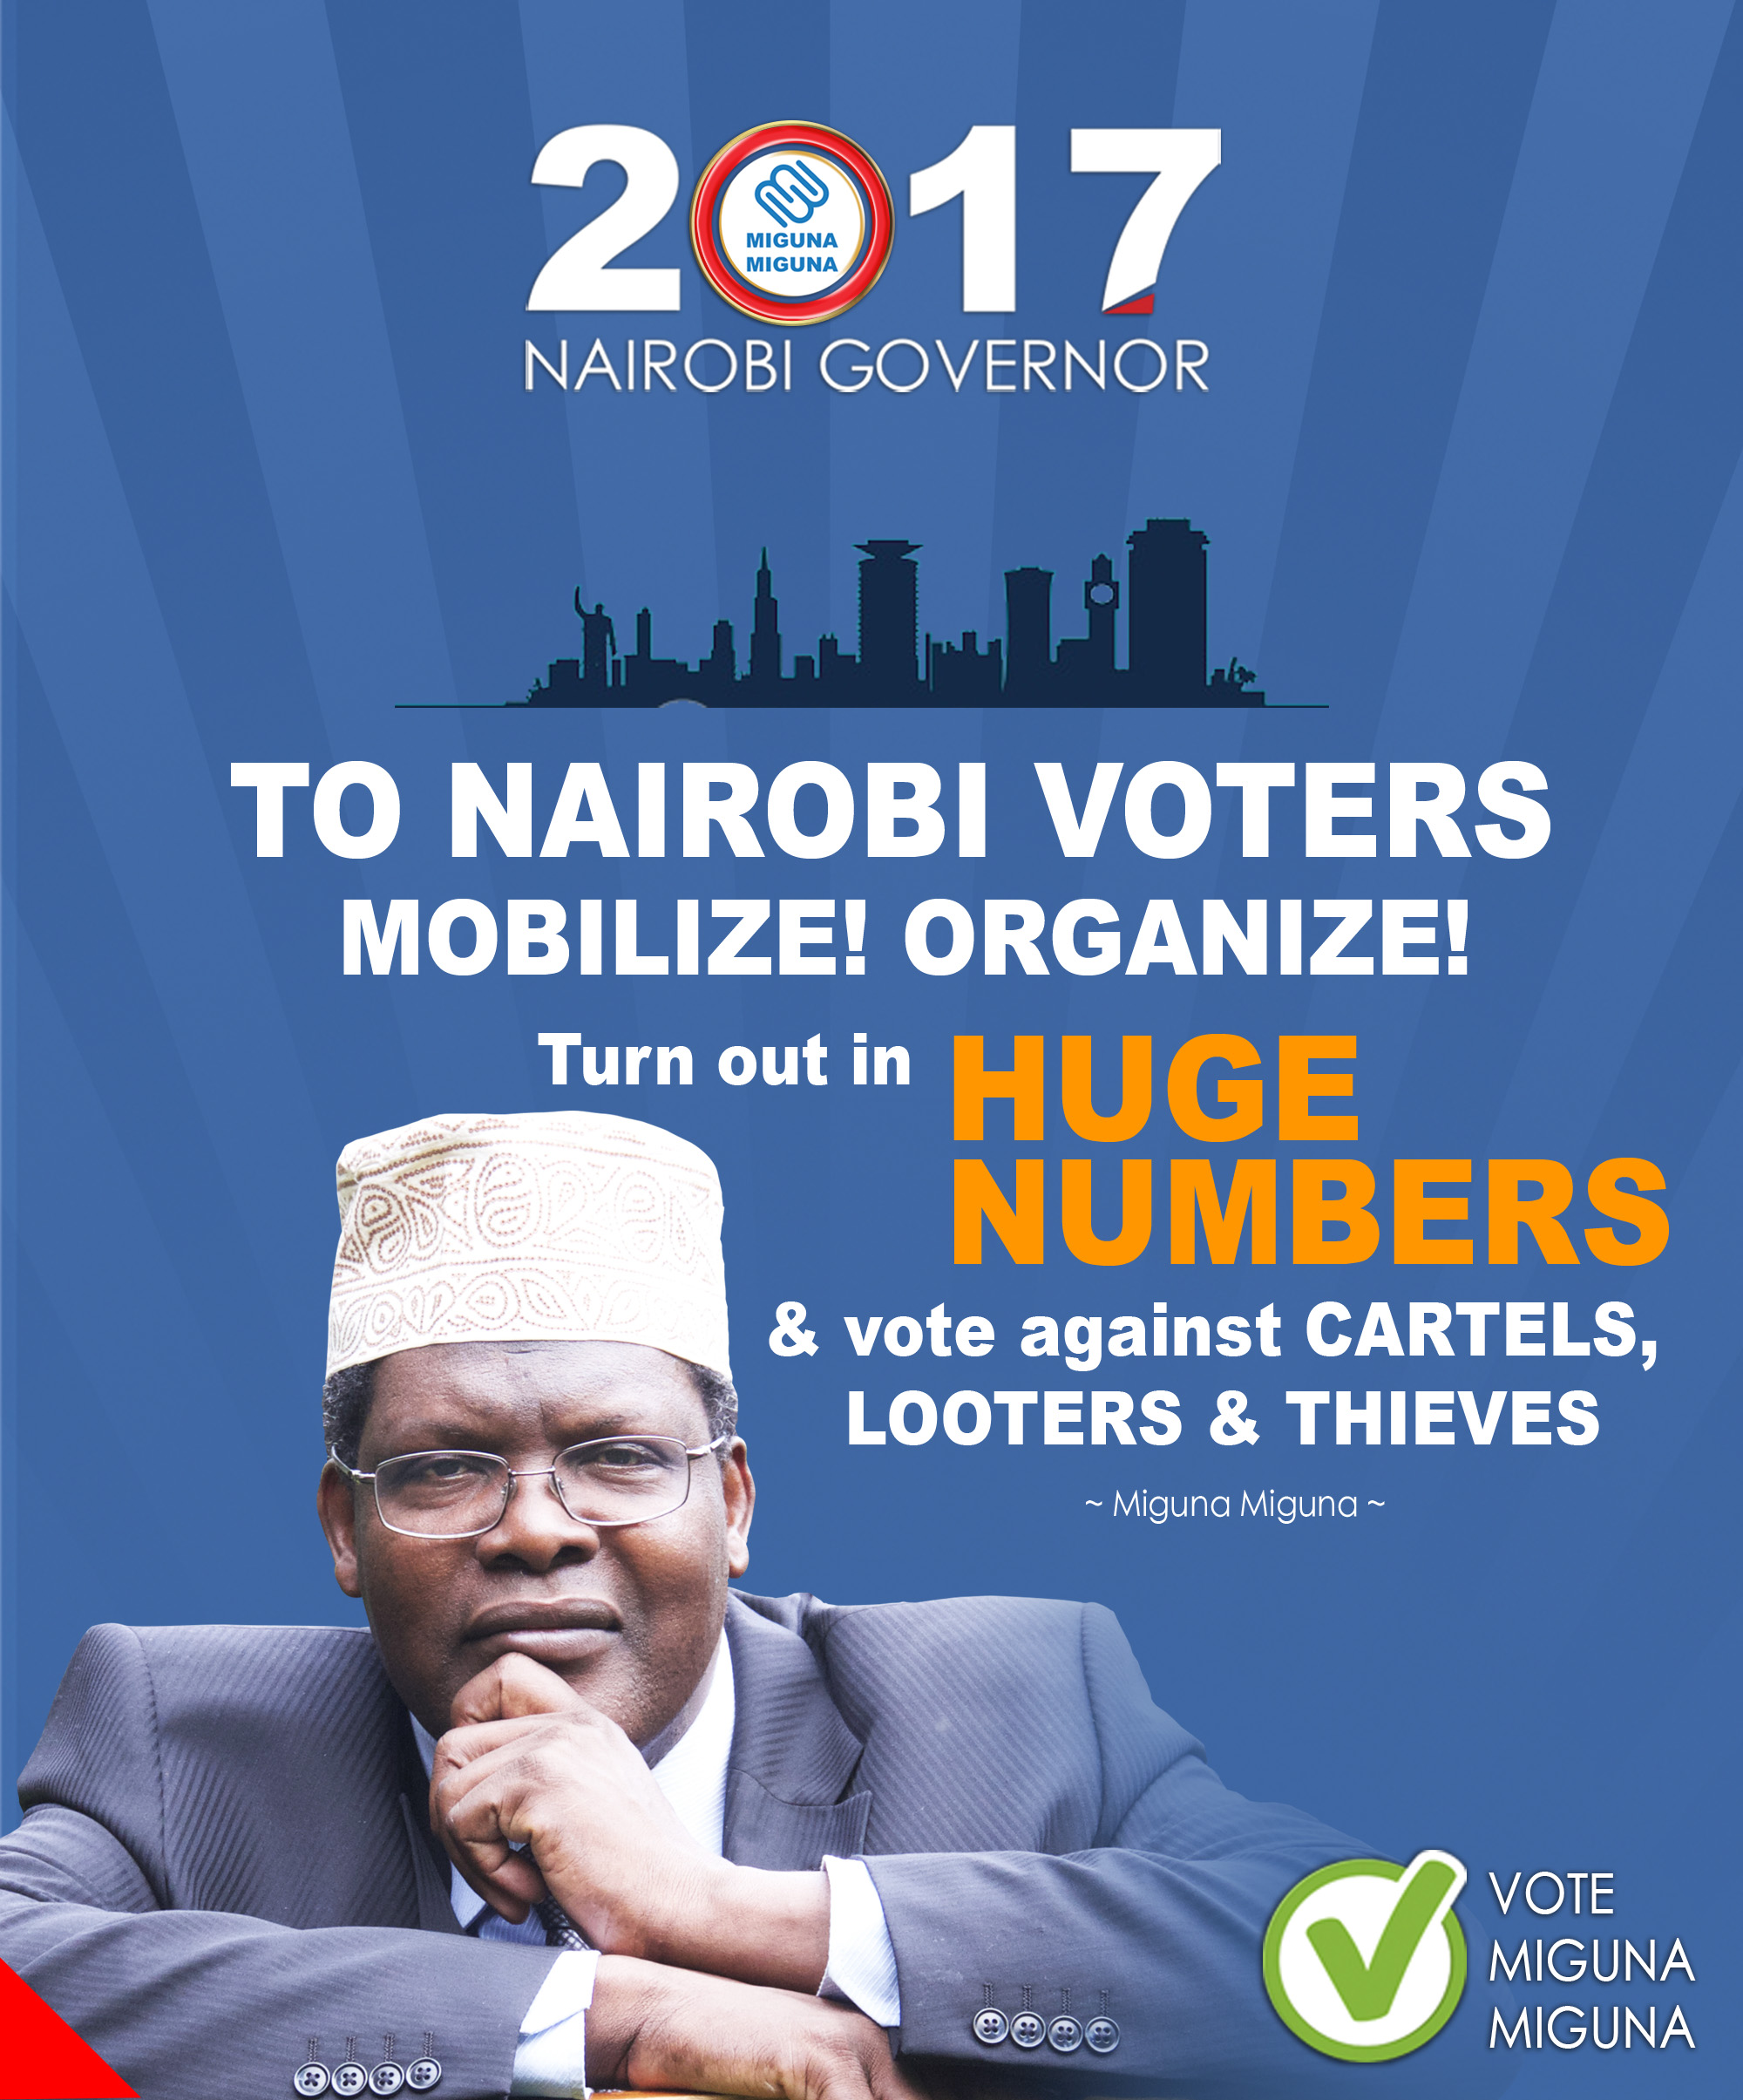 Nairobi voters, mobilize!